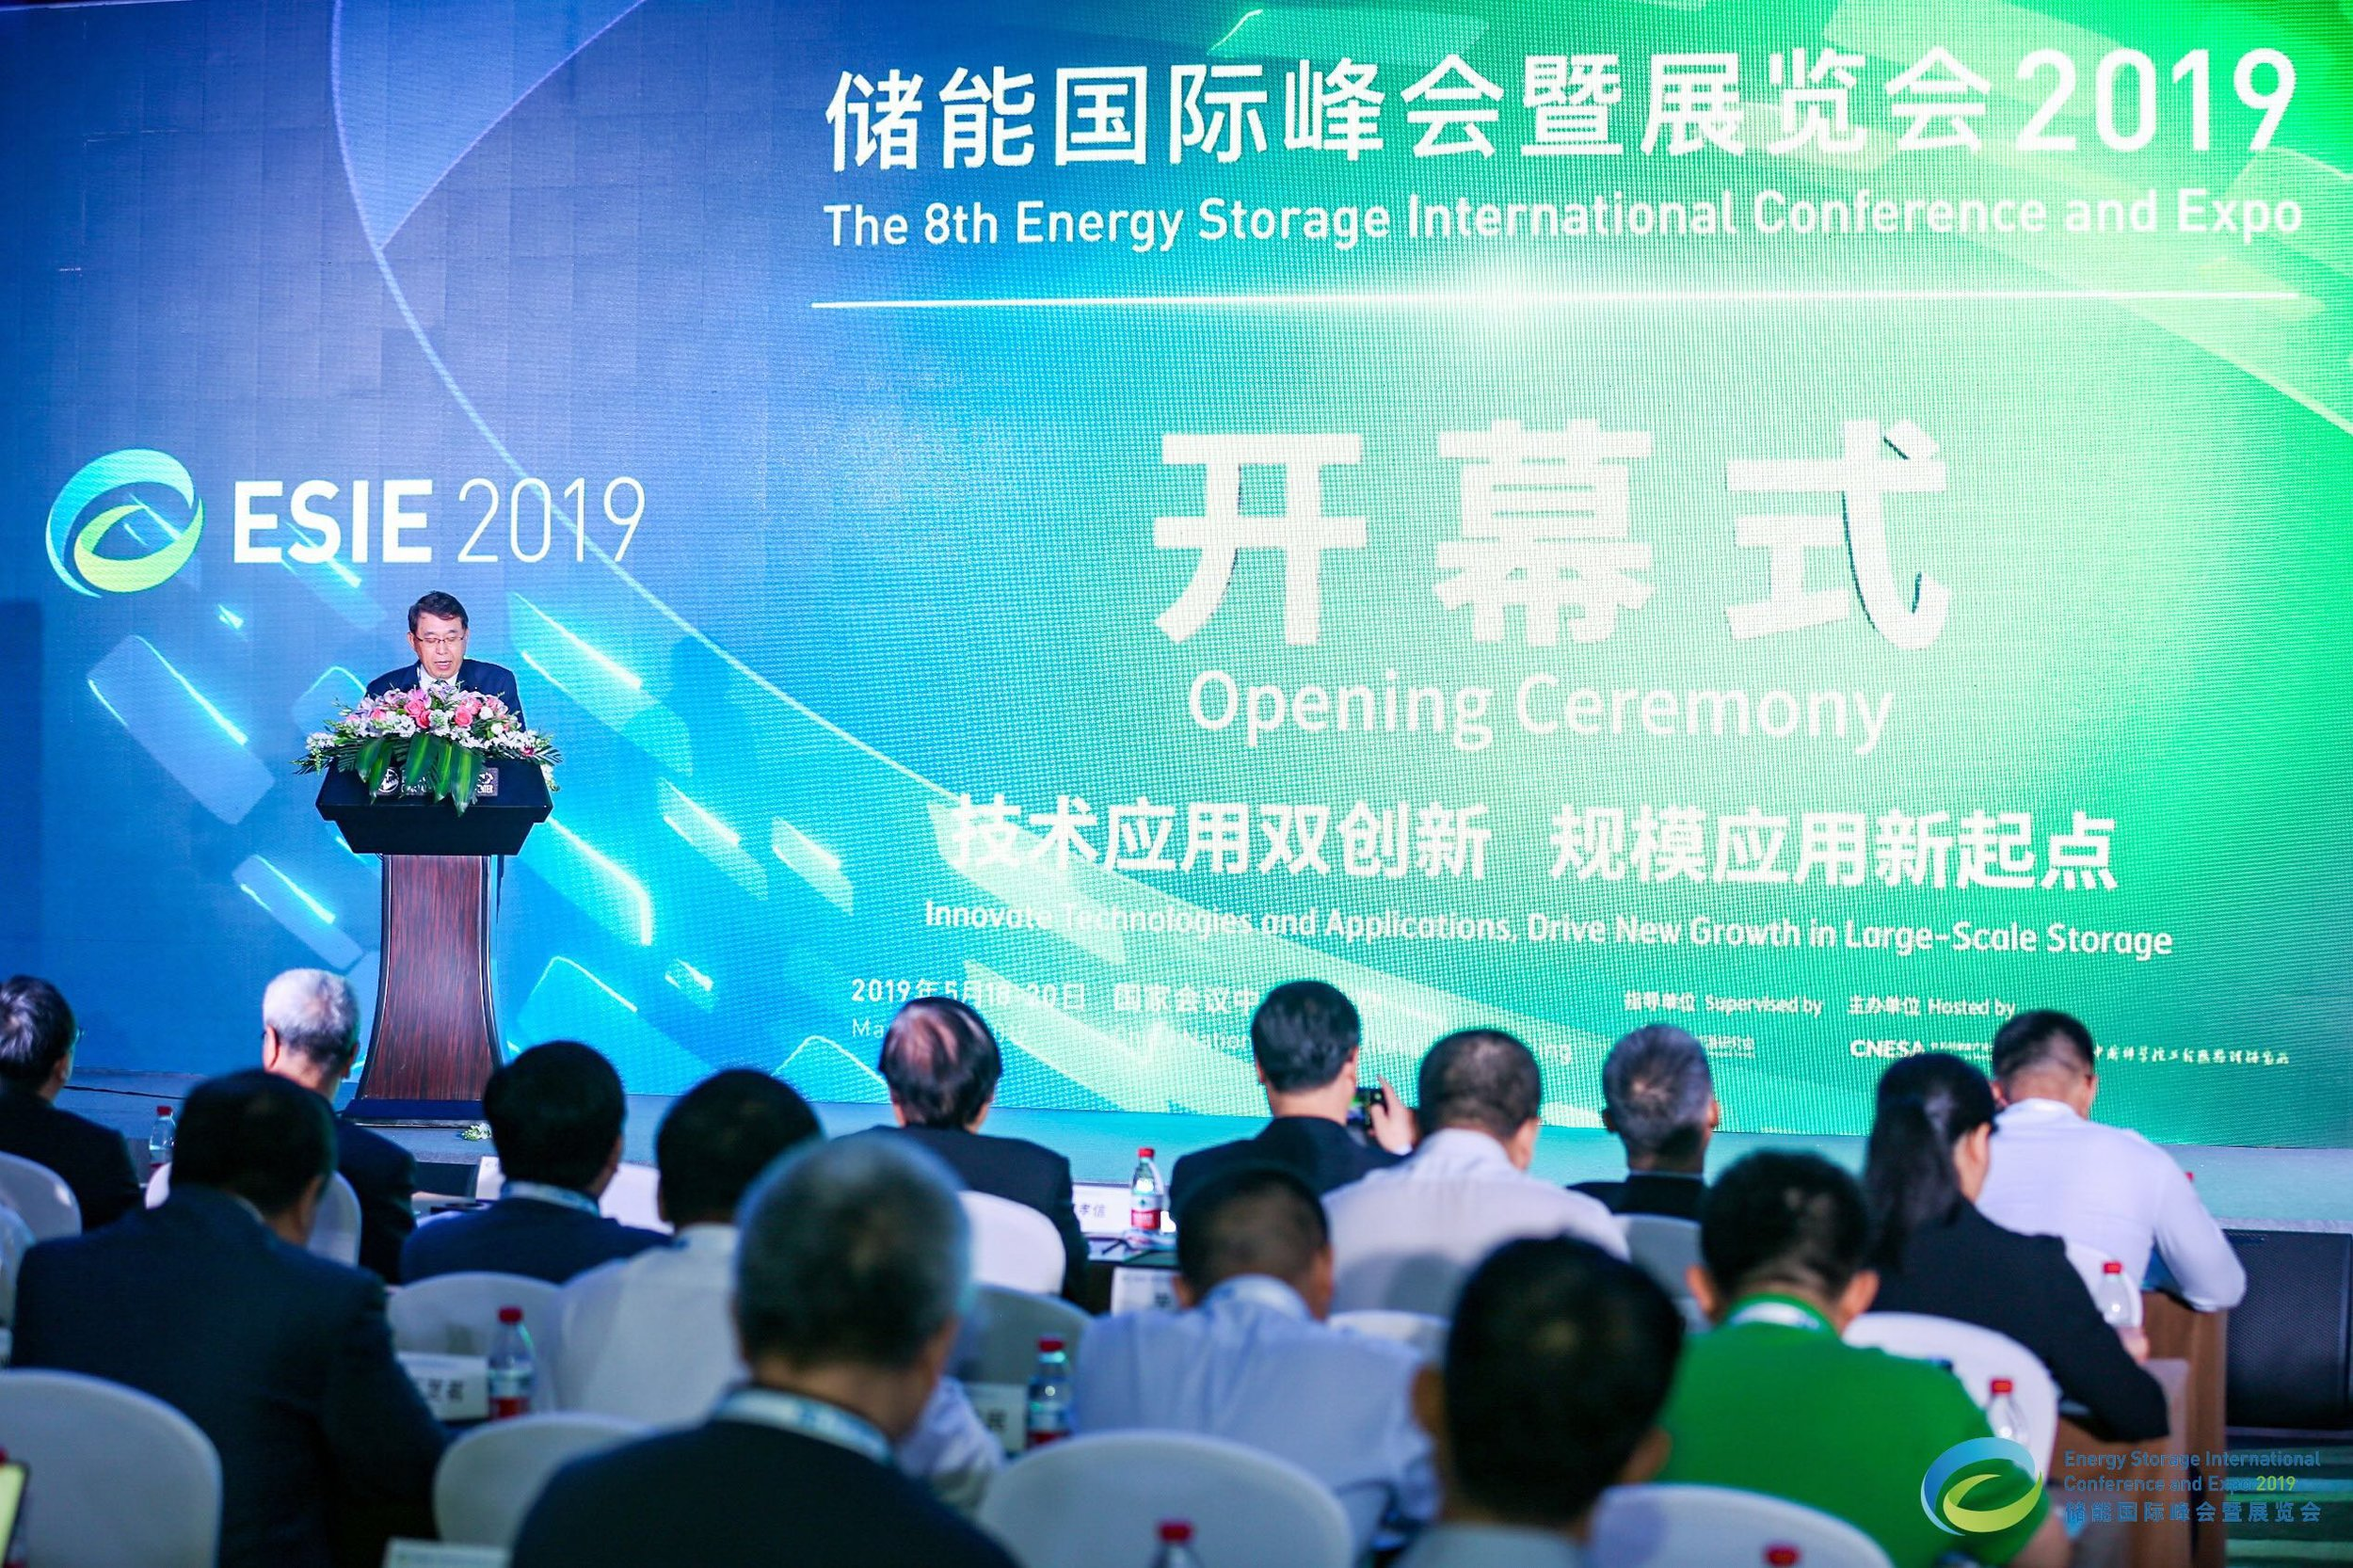 China Energy Research Society Vice Chairman and Former National Energy Administration Assistant Director Shi Yubo Delivers a Speech